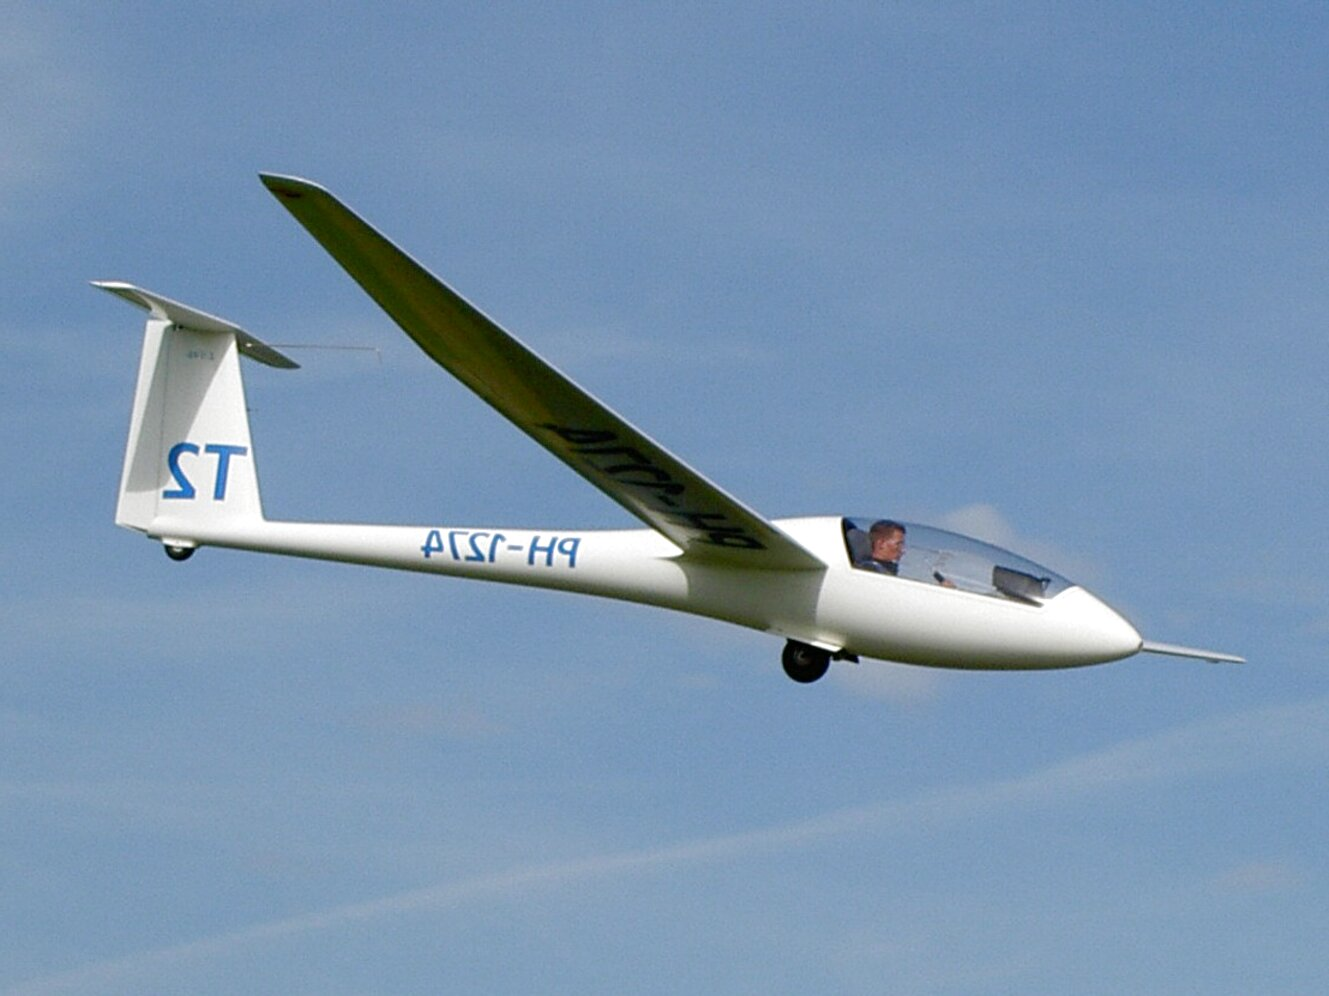 Gliders For Sale >> Sailplanes Gliders For Sale Only 3 Left At 75